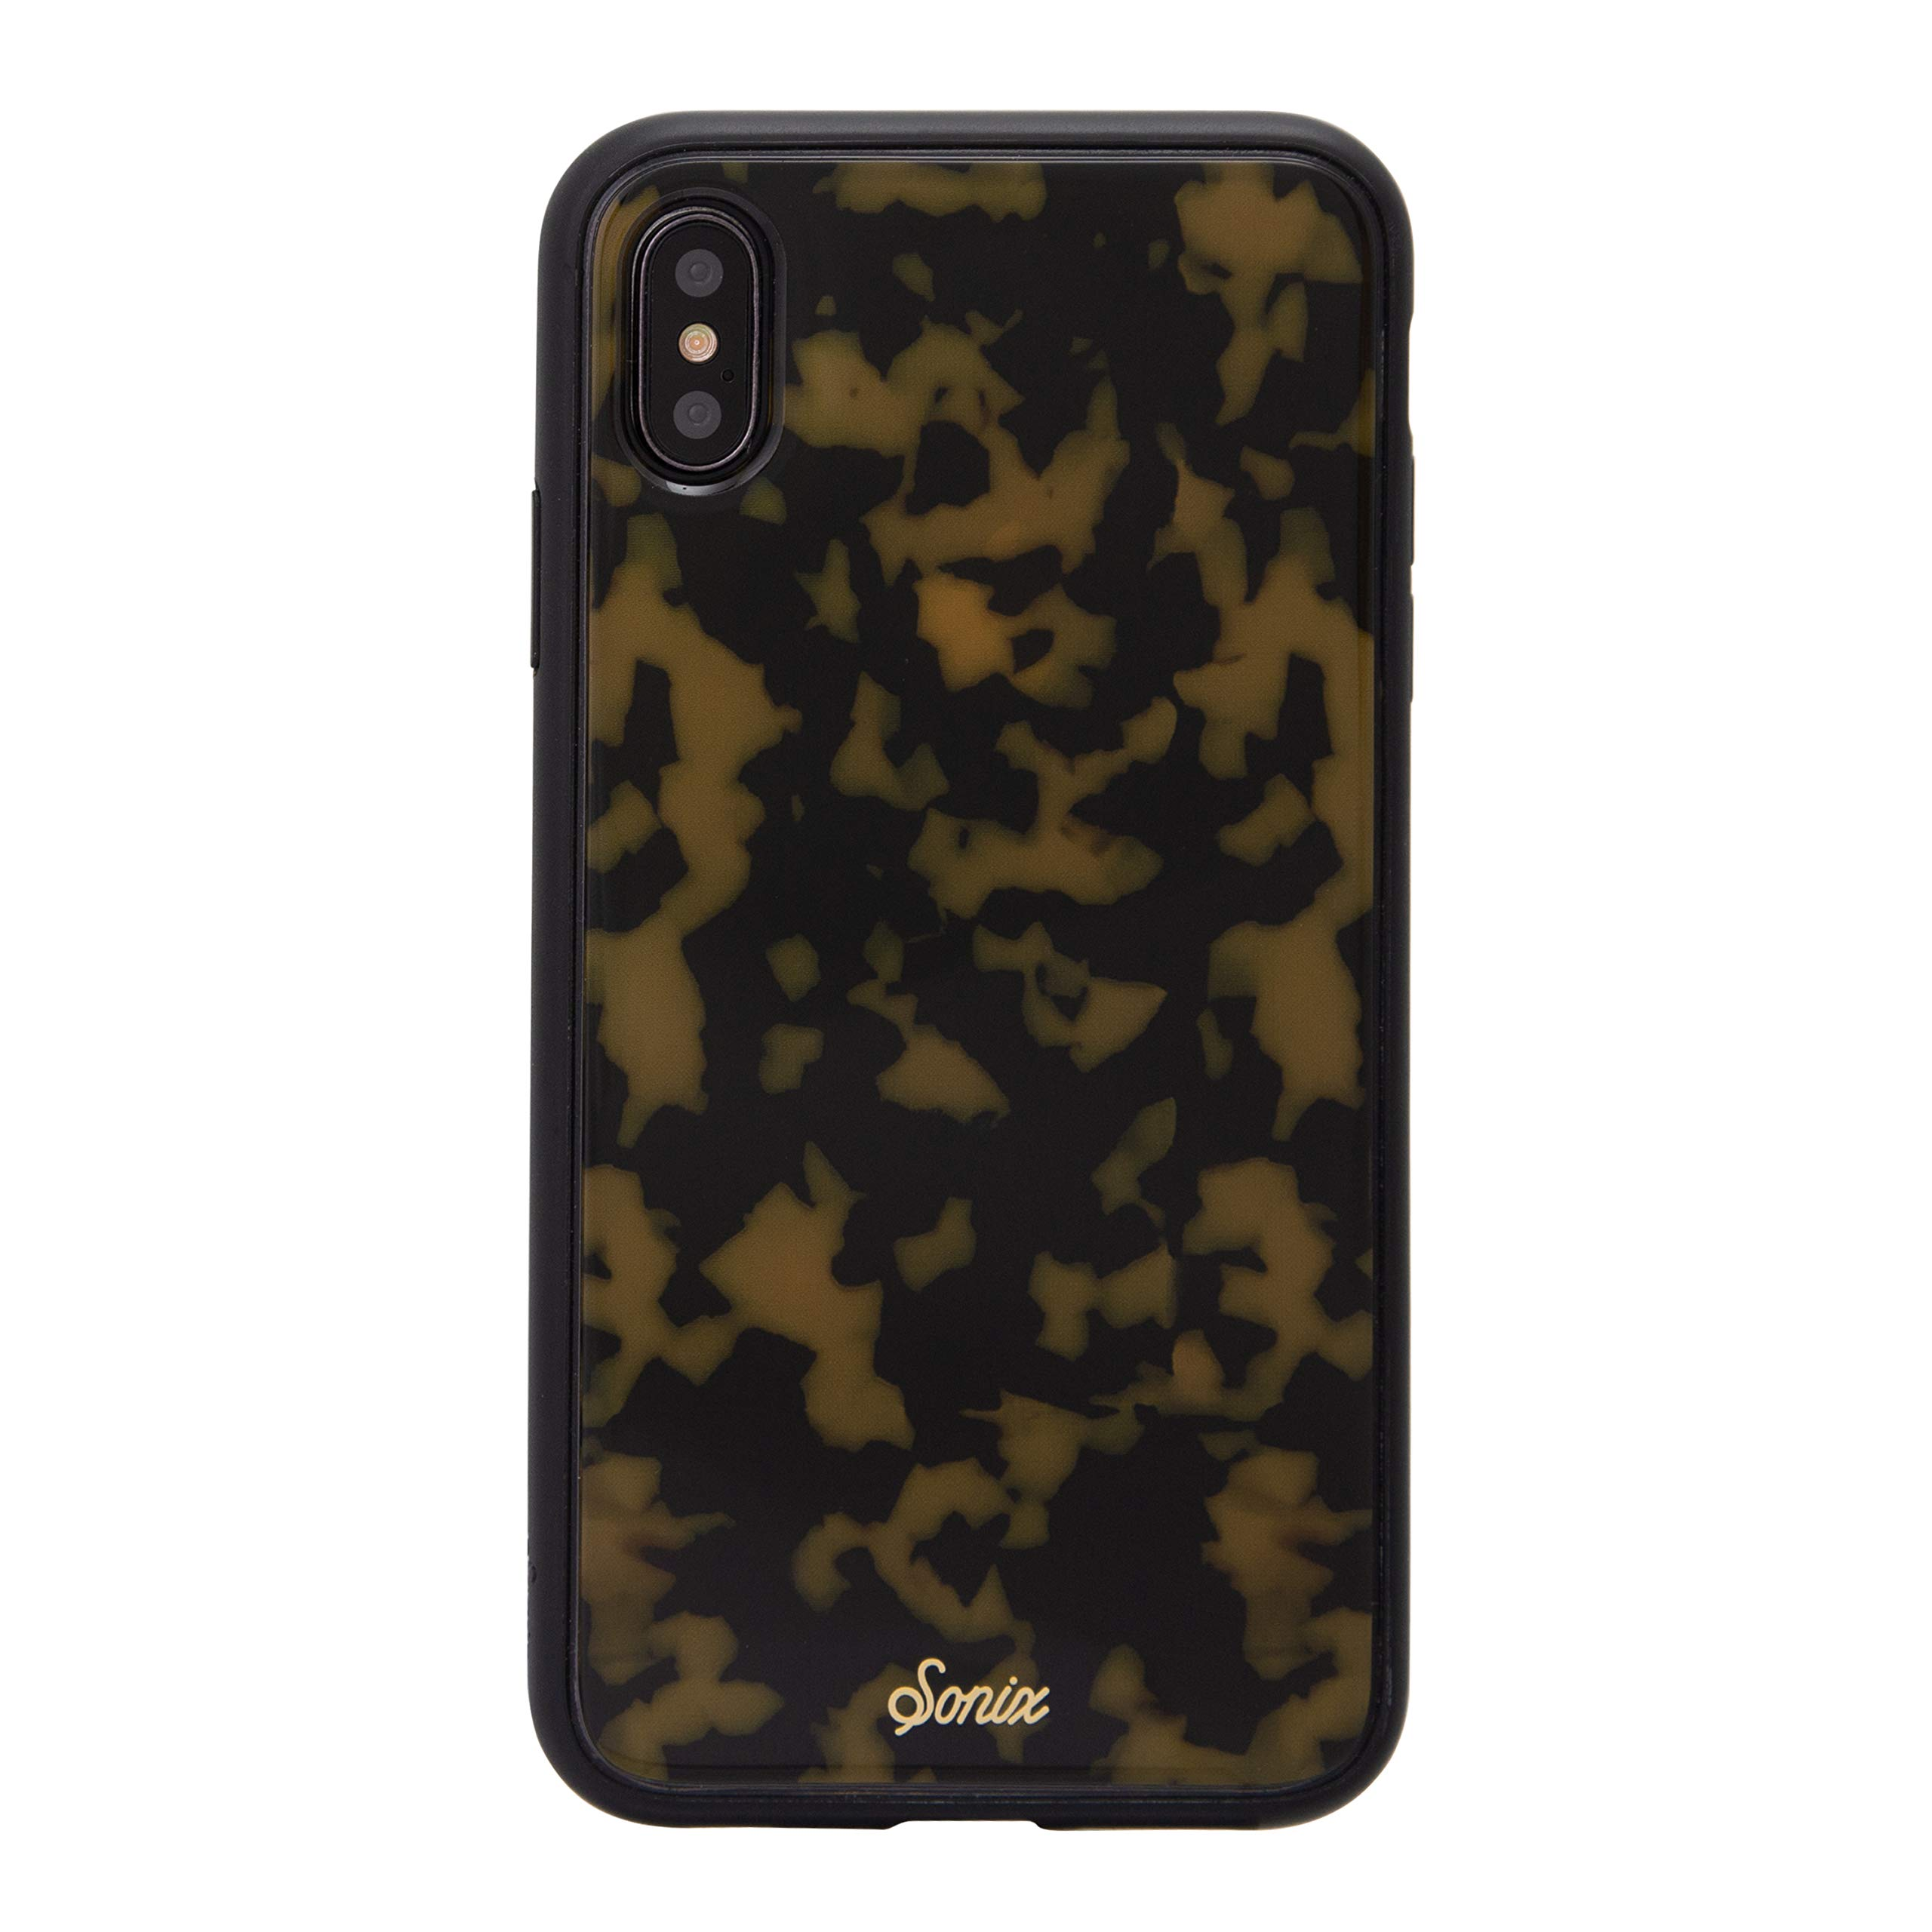 Sonix Brown Tort (Tortoiseshell) Case for iPhone Xs Max [Military Drop Test Certified] Protective Tortoise Shell Case Series for Apple iPhone Xs Max by Sonix